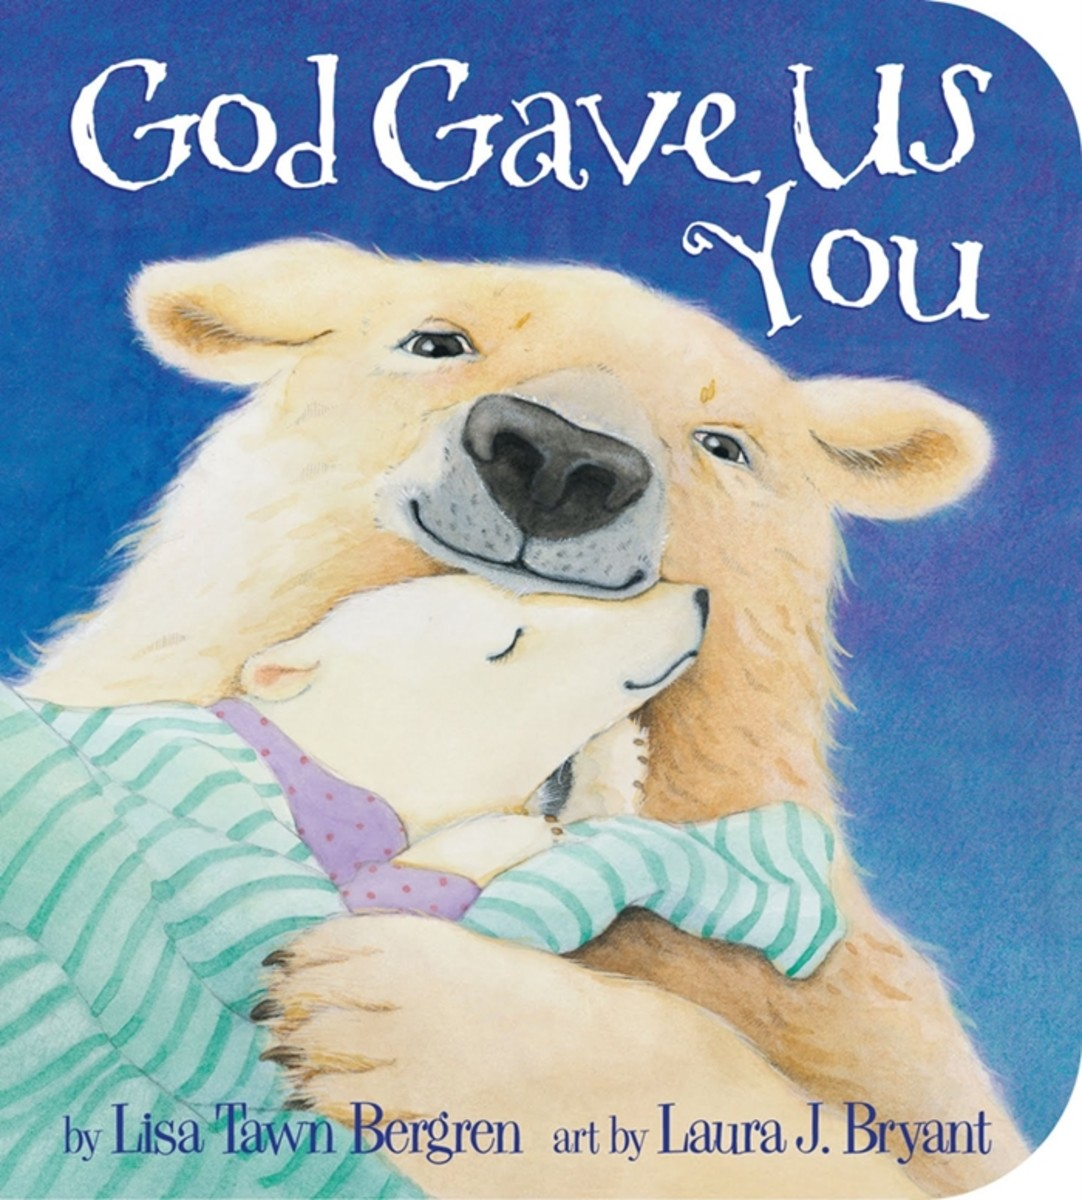 This beautiful book, God Gave Us You is sure to be a treasured keepsake as well as a favorite bed-time read!